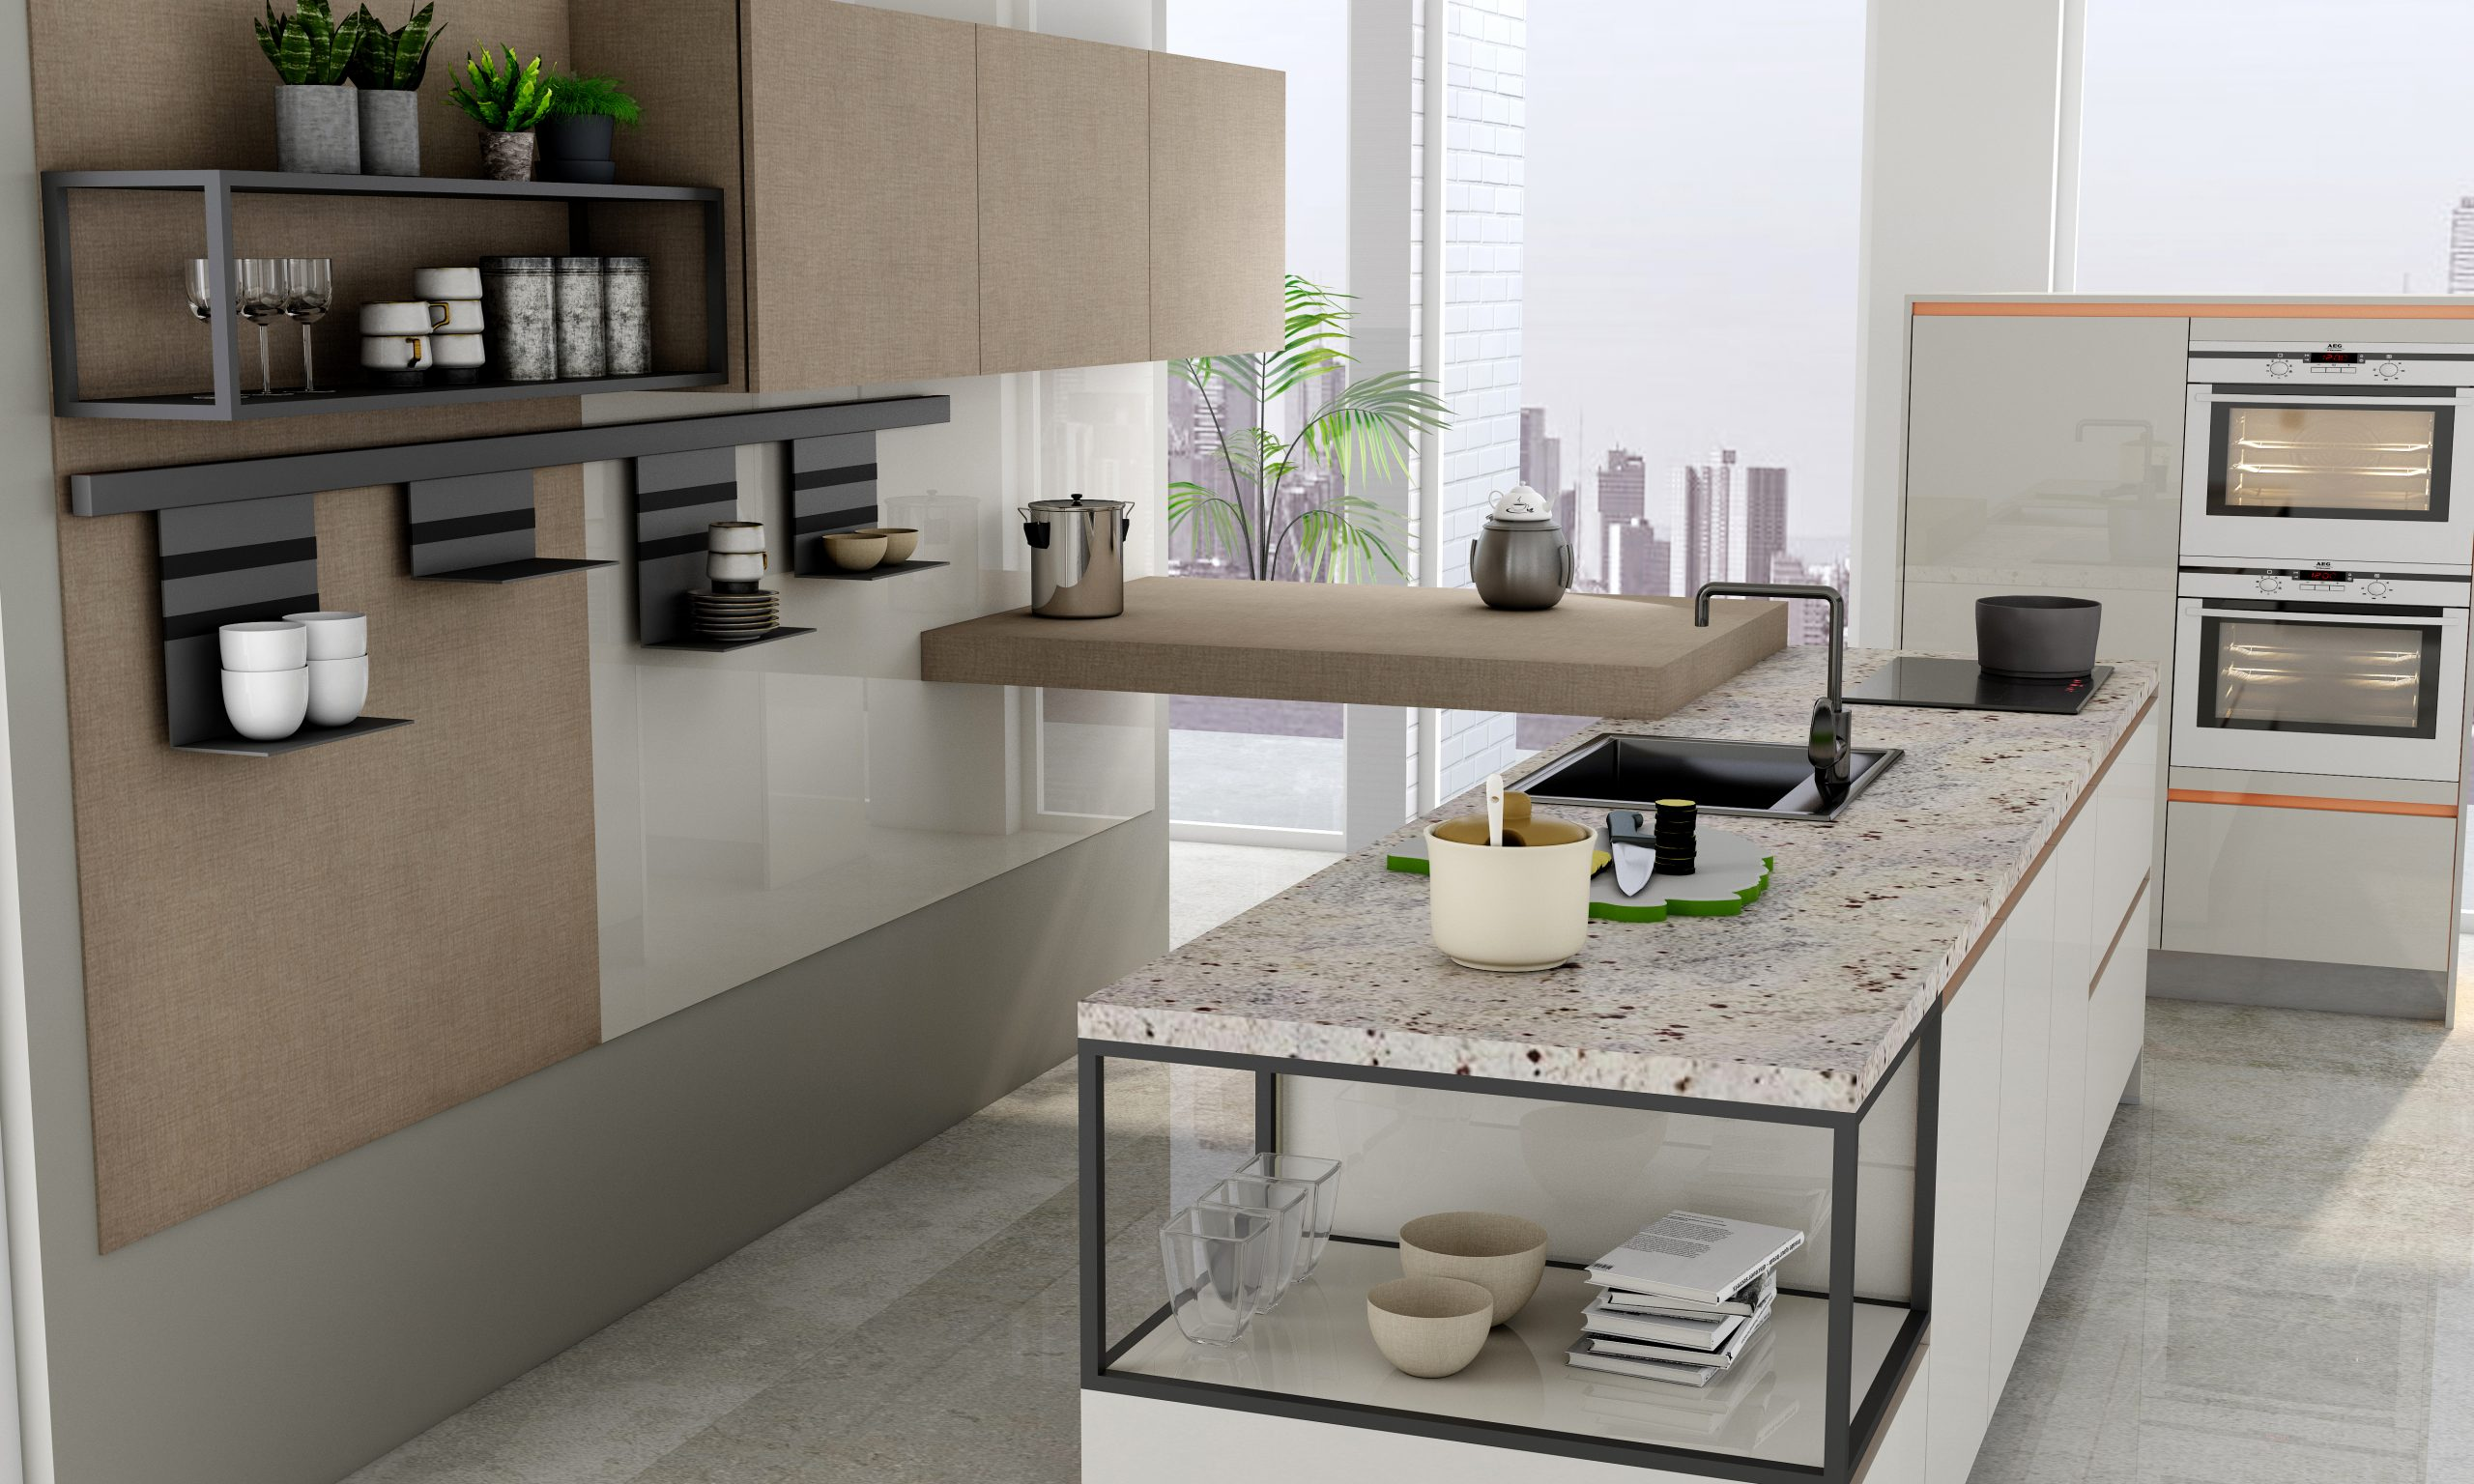 Premiumline Kitchen Worktop With Brass Handleless Profile in Textured Penelope and Light Grey Acrylic Finish